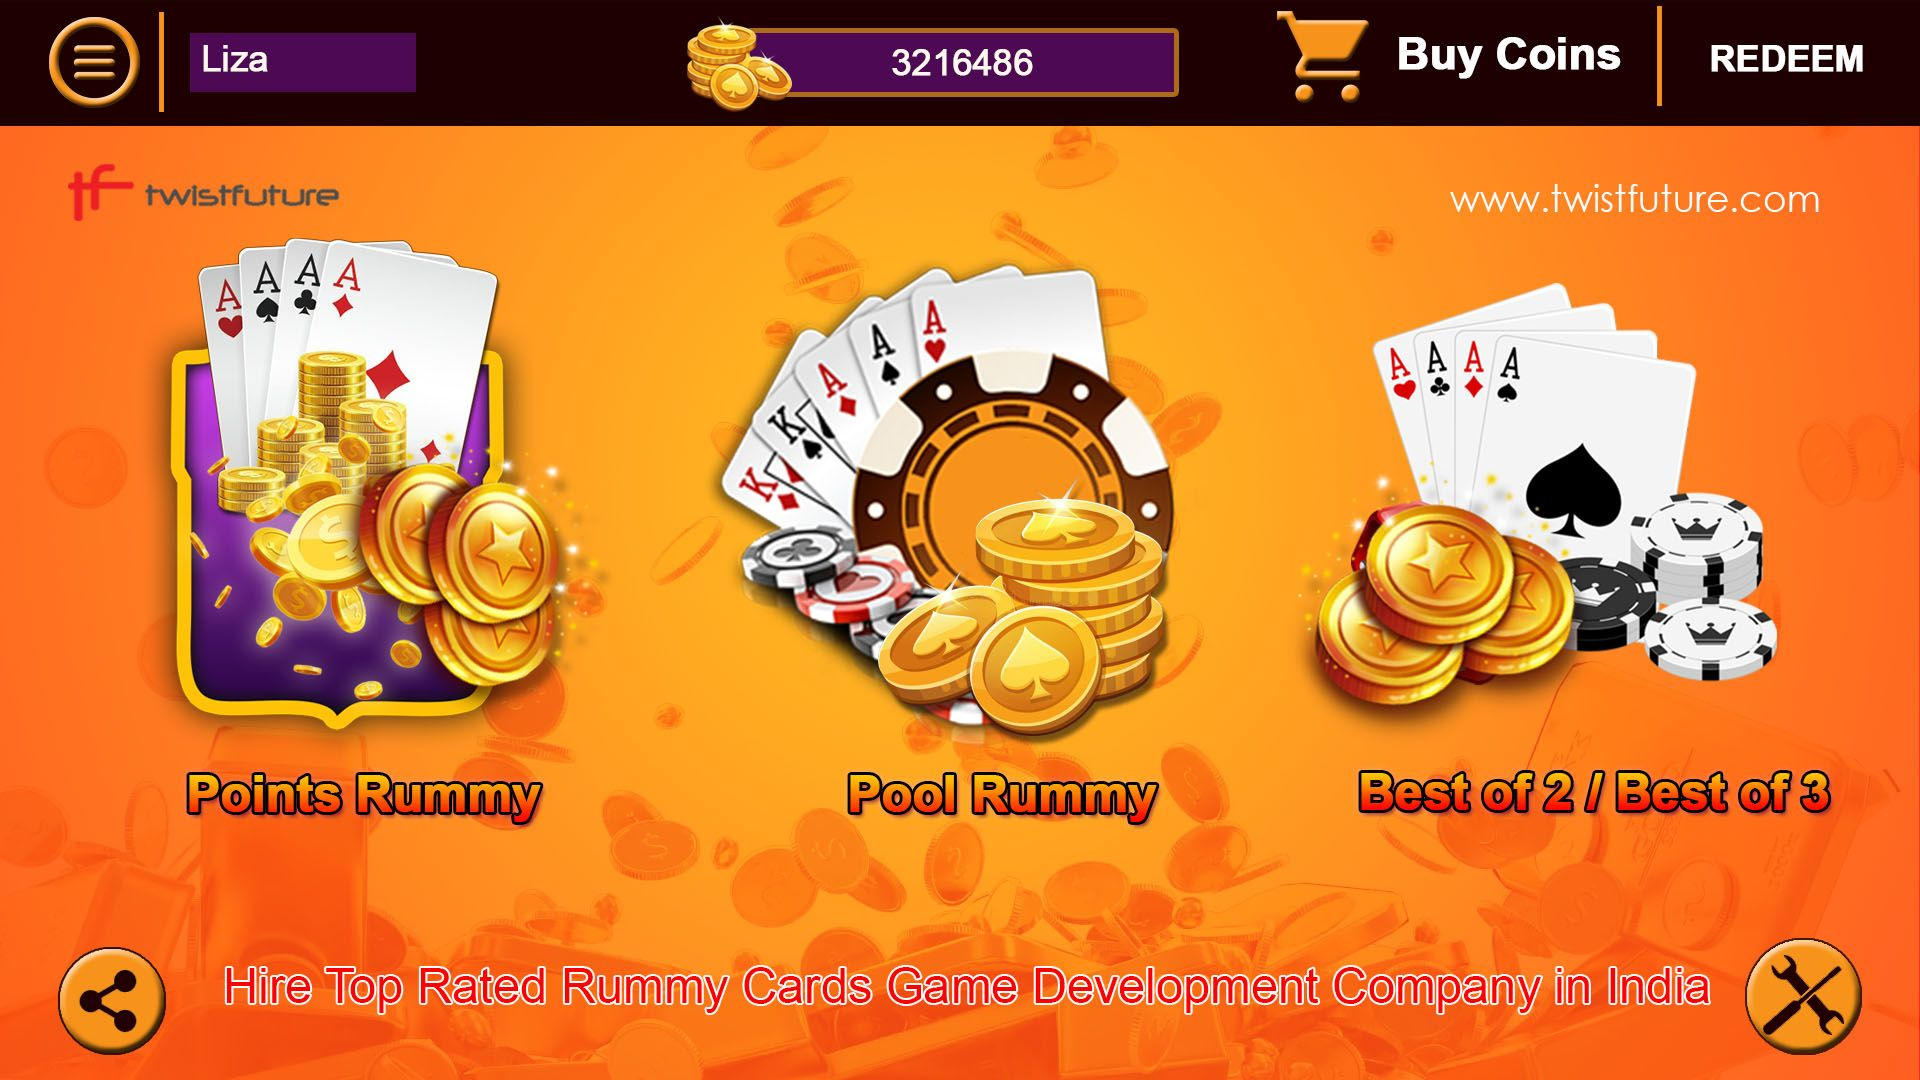 Hire Top Rated Rummy Cards Game Development Company In India